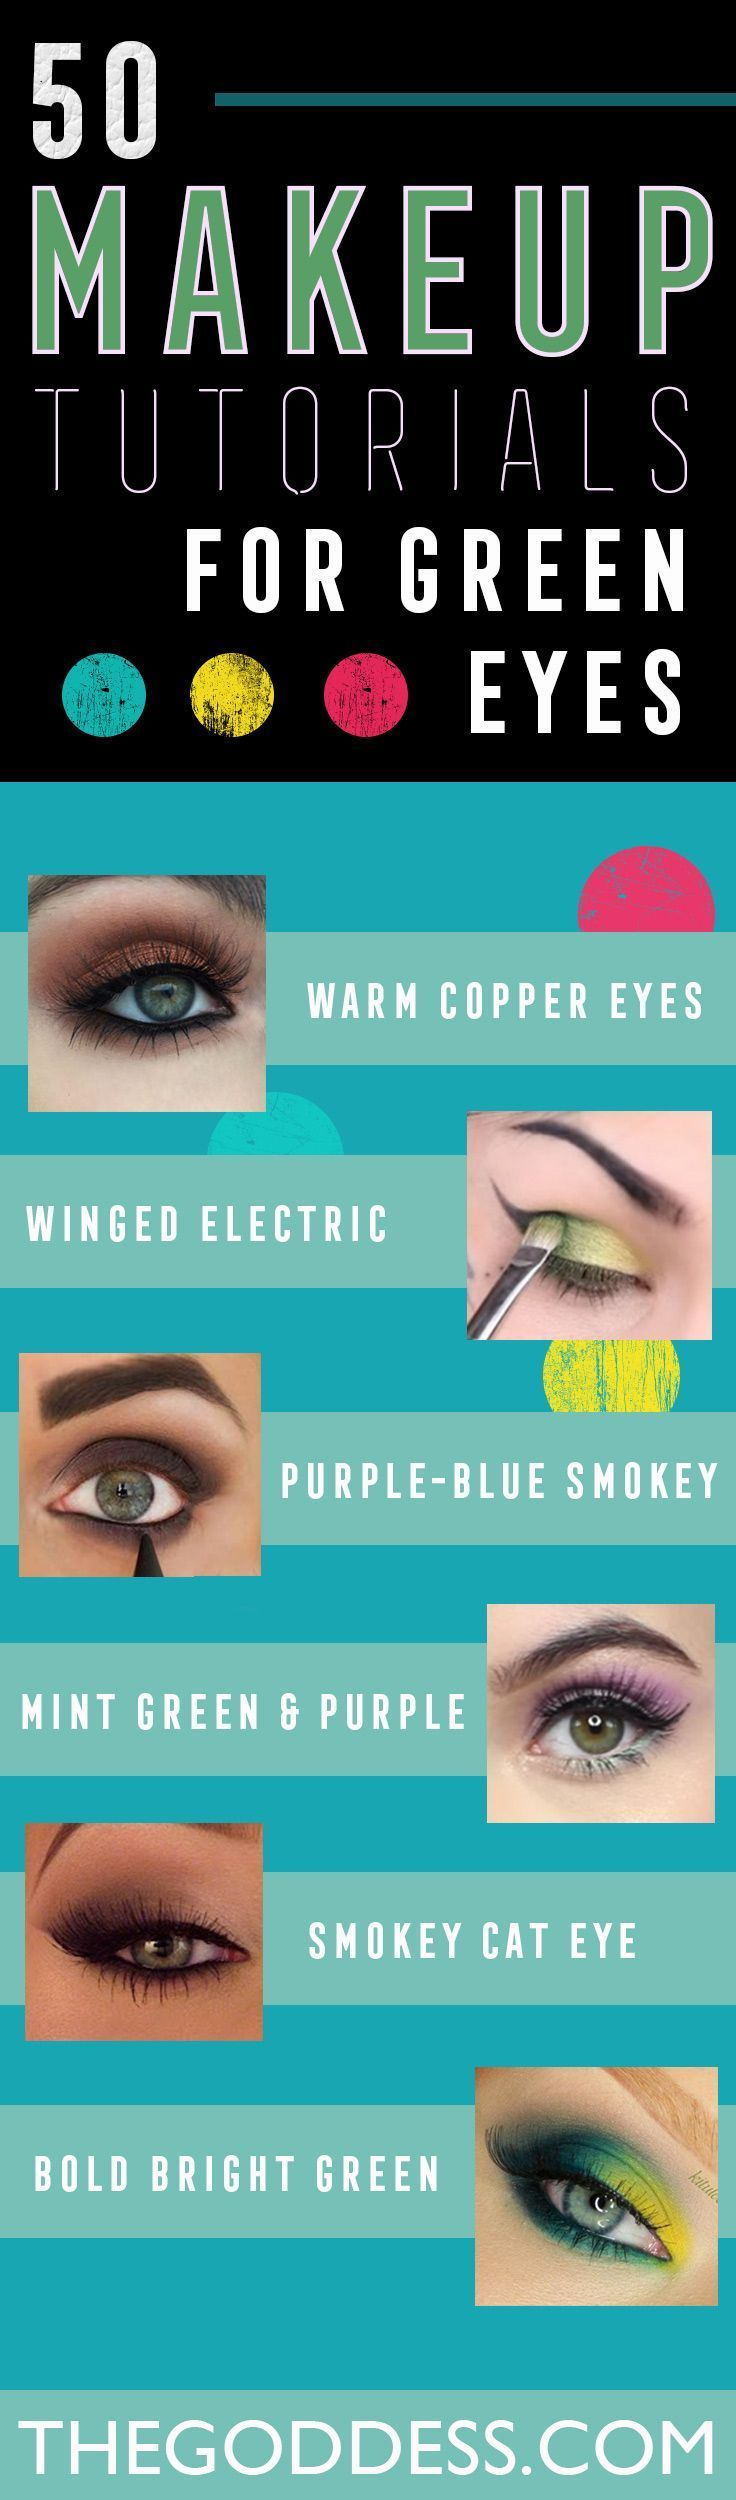 Makeup Tutorials for Green Eyes -Easy Eyeshadow Video and Tutorial Ideas - Natural Everyday Step by Step Beauty Tricks - Simple Looks for Night and Day